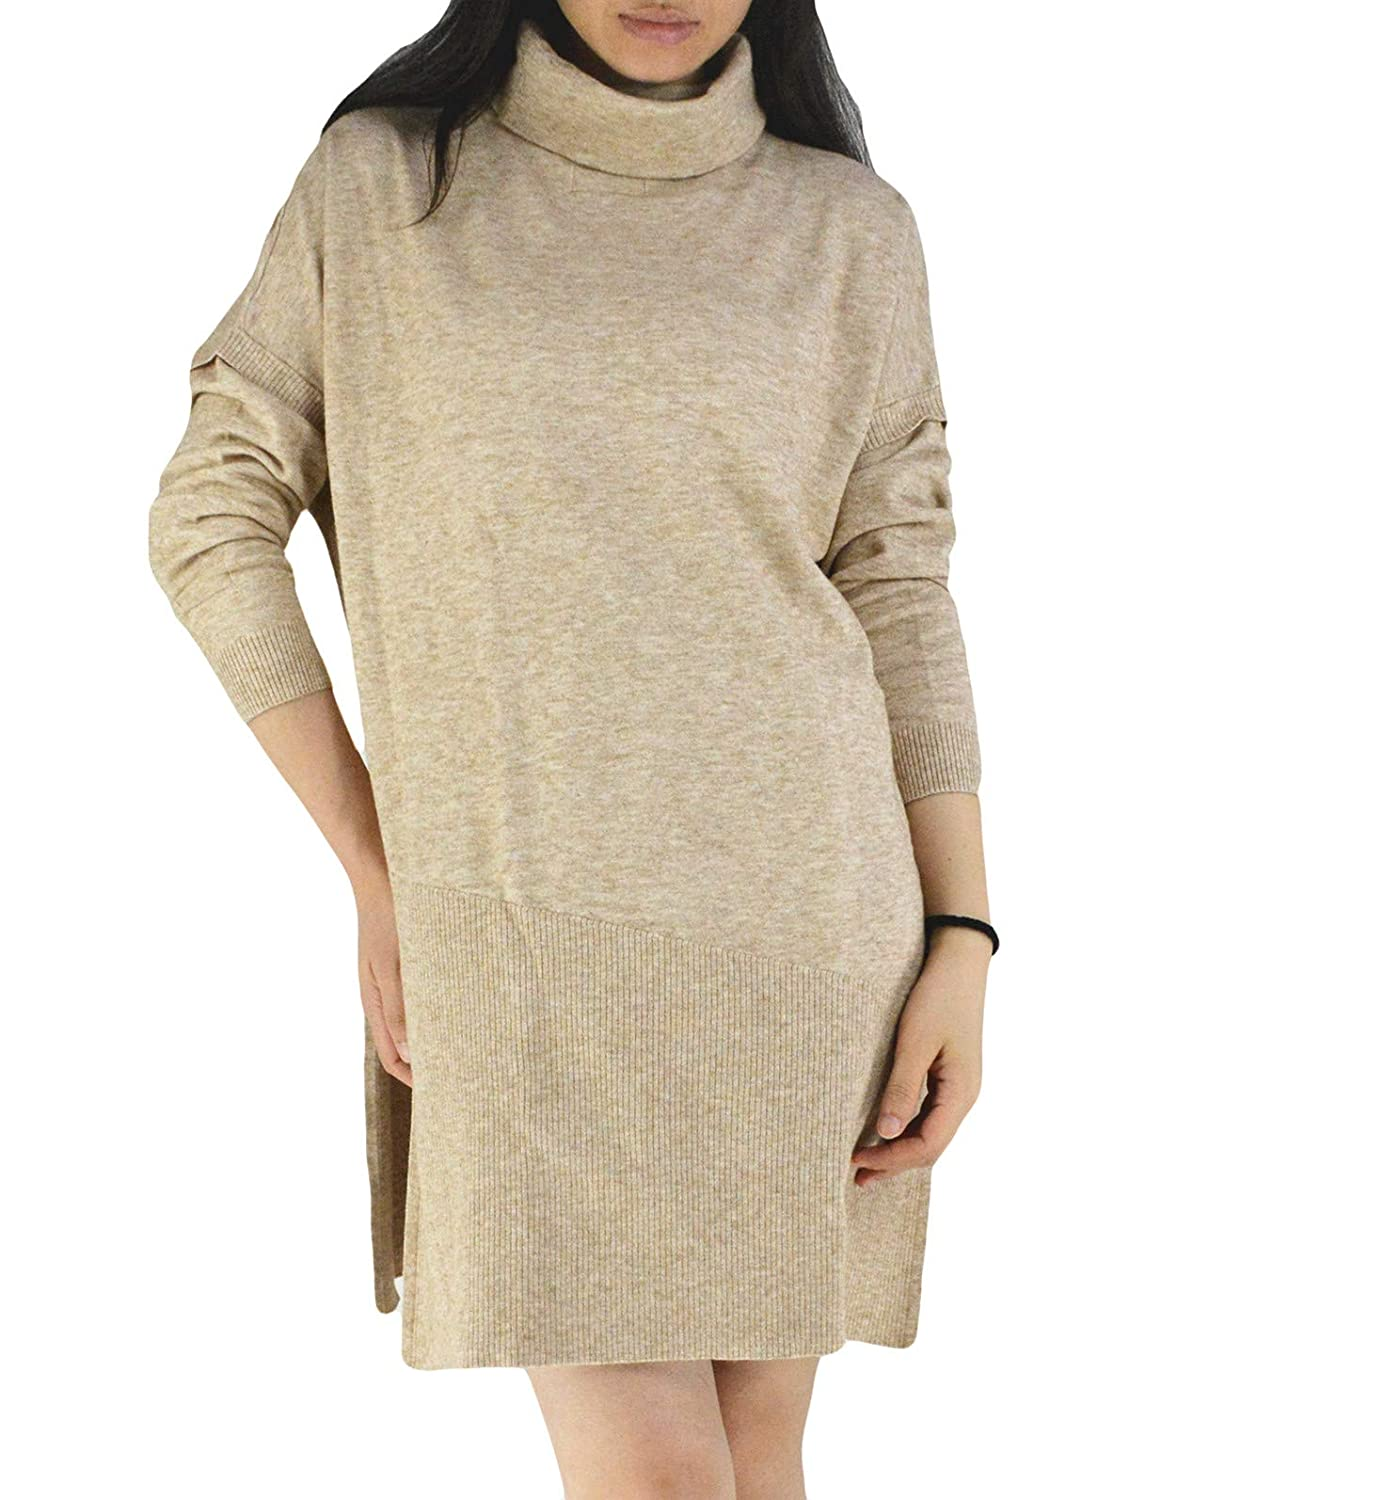 YSJERA Women s Oversized Loose Turtleneck Long Sleeves Pullover Knit Sweater  Top Shirts Beige at Amazon Women s Clothing store  e20ae81ac